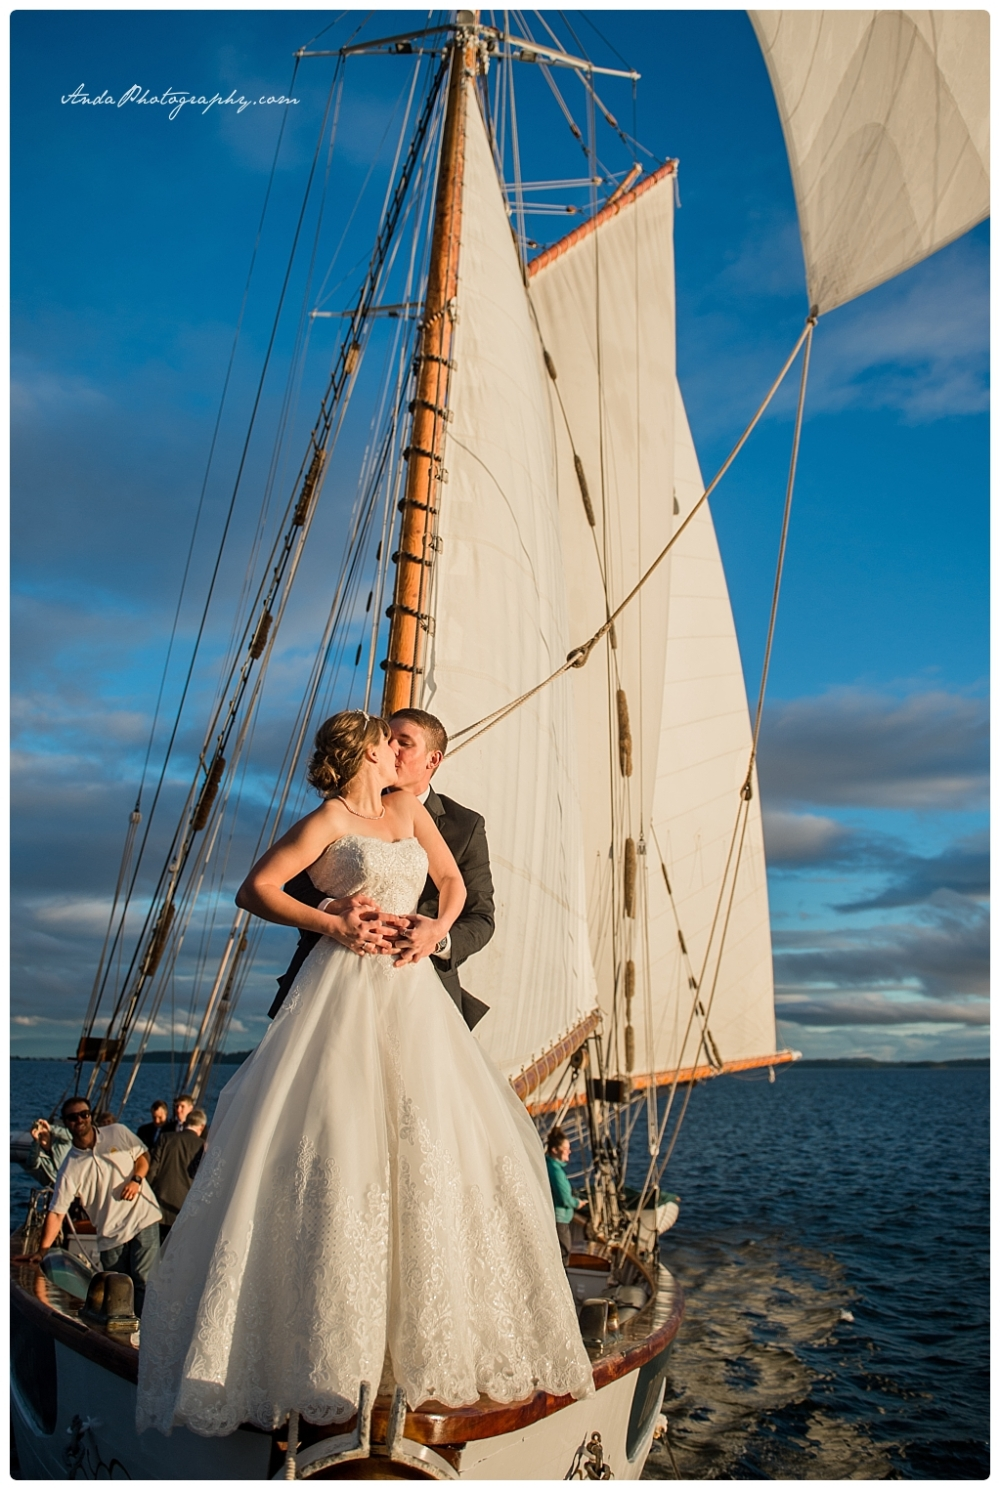 Anda Photography Bellingham wedding photographer seattle wedding photographer Schooner Zodiak Wedding photos_0032